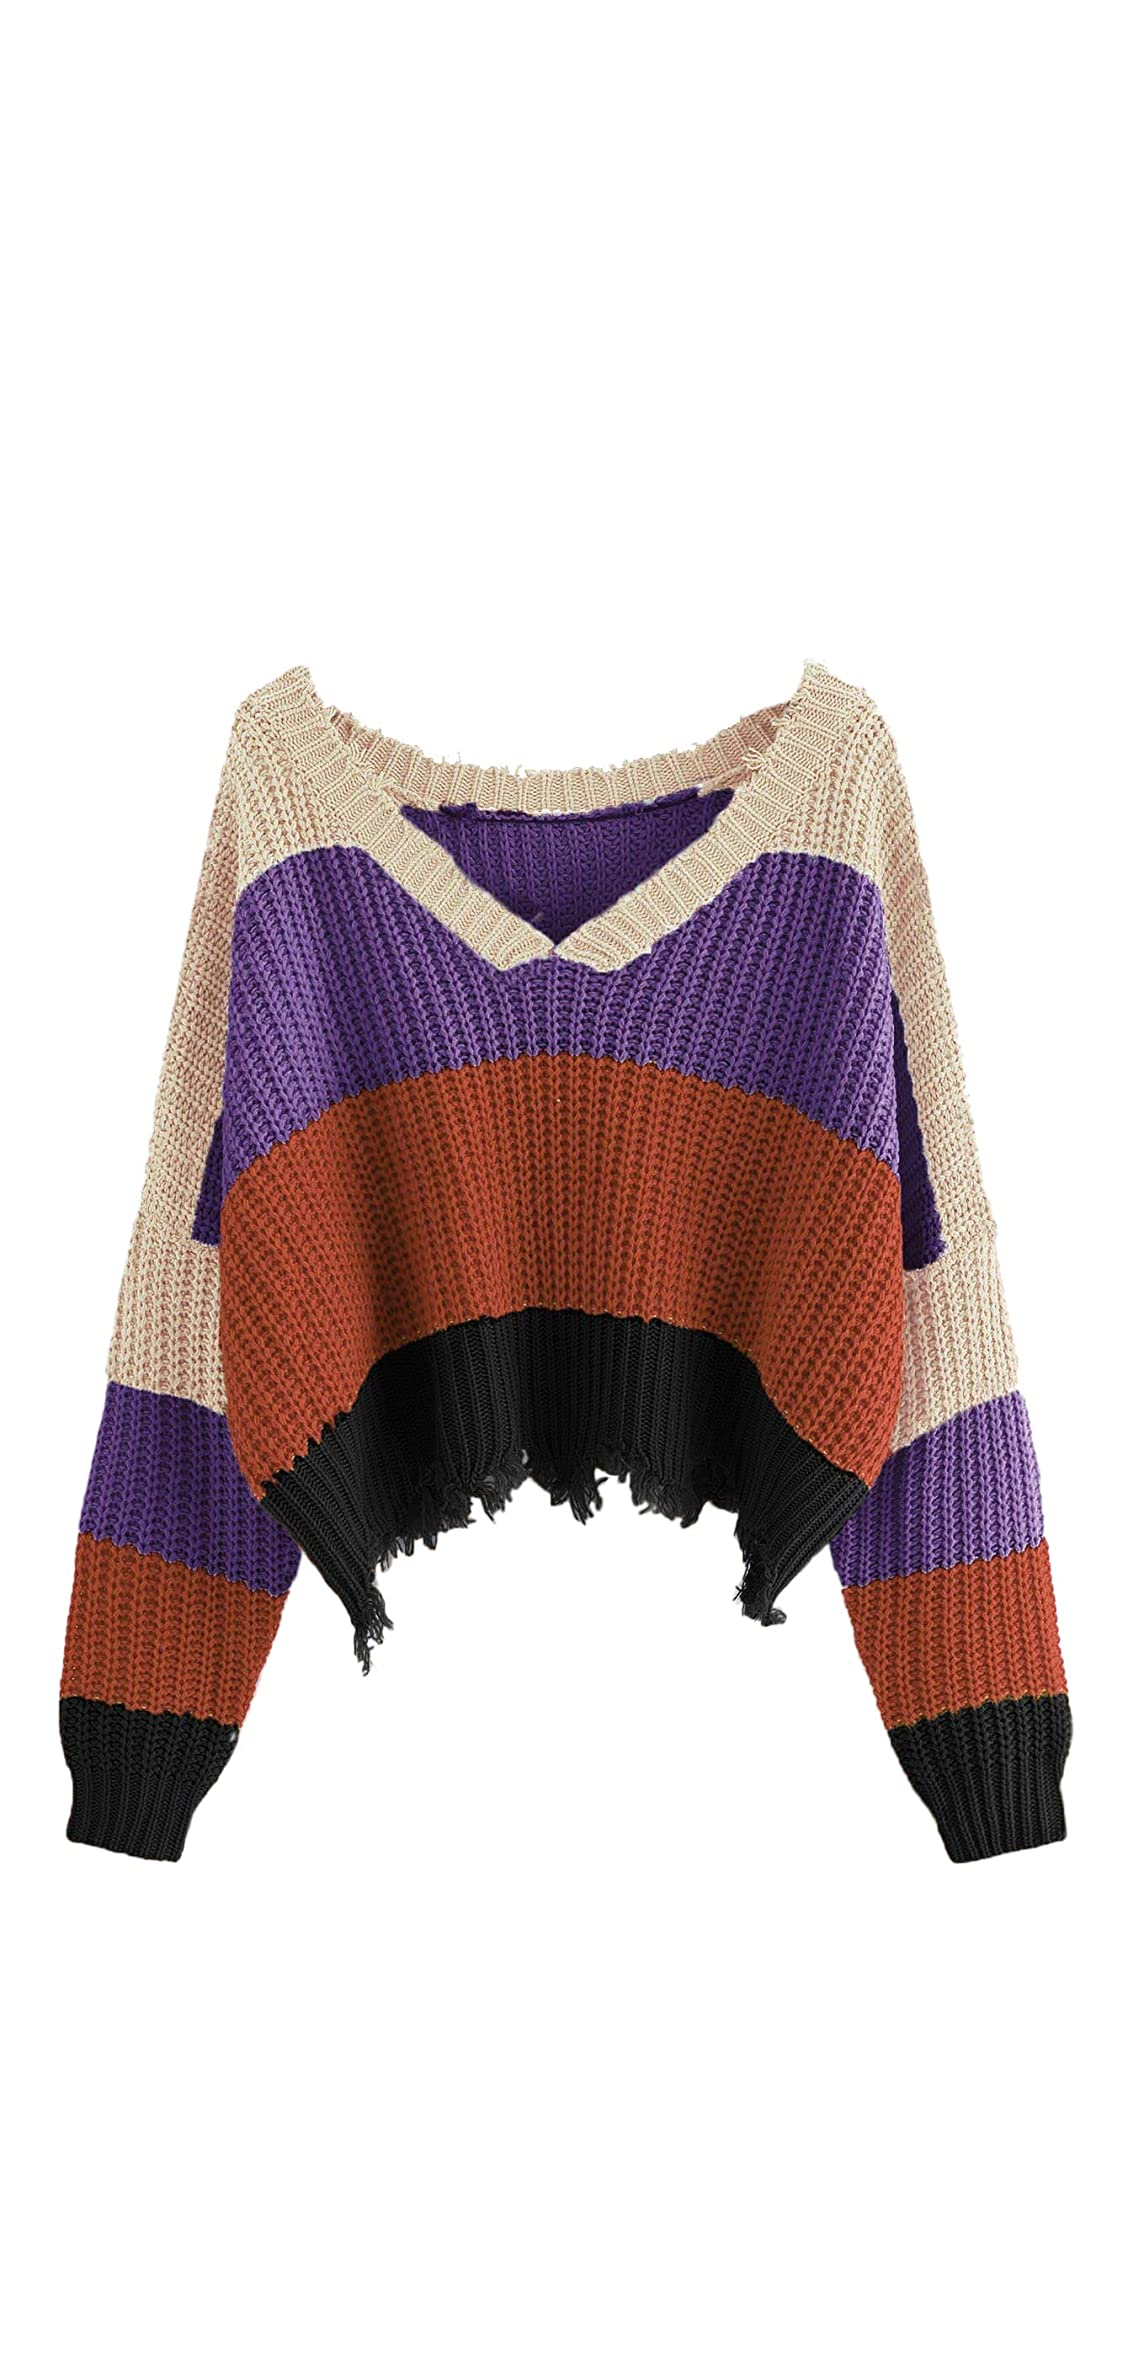 Womens Loose Crop Sweater Colorblock Knitted Ripped Tops